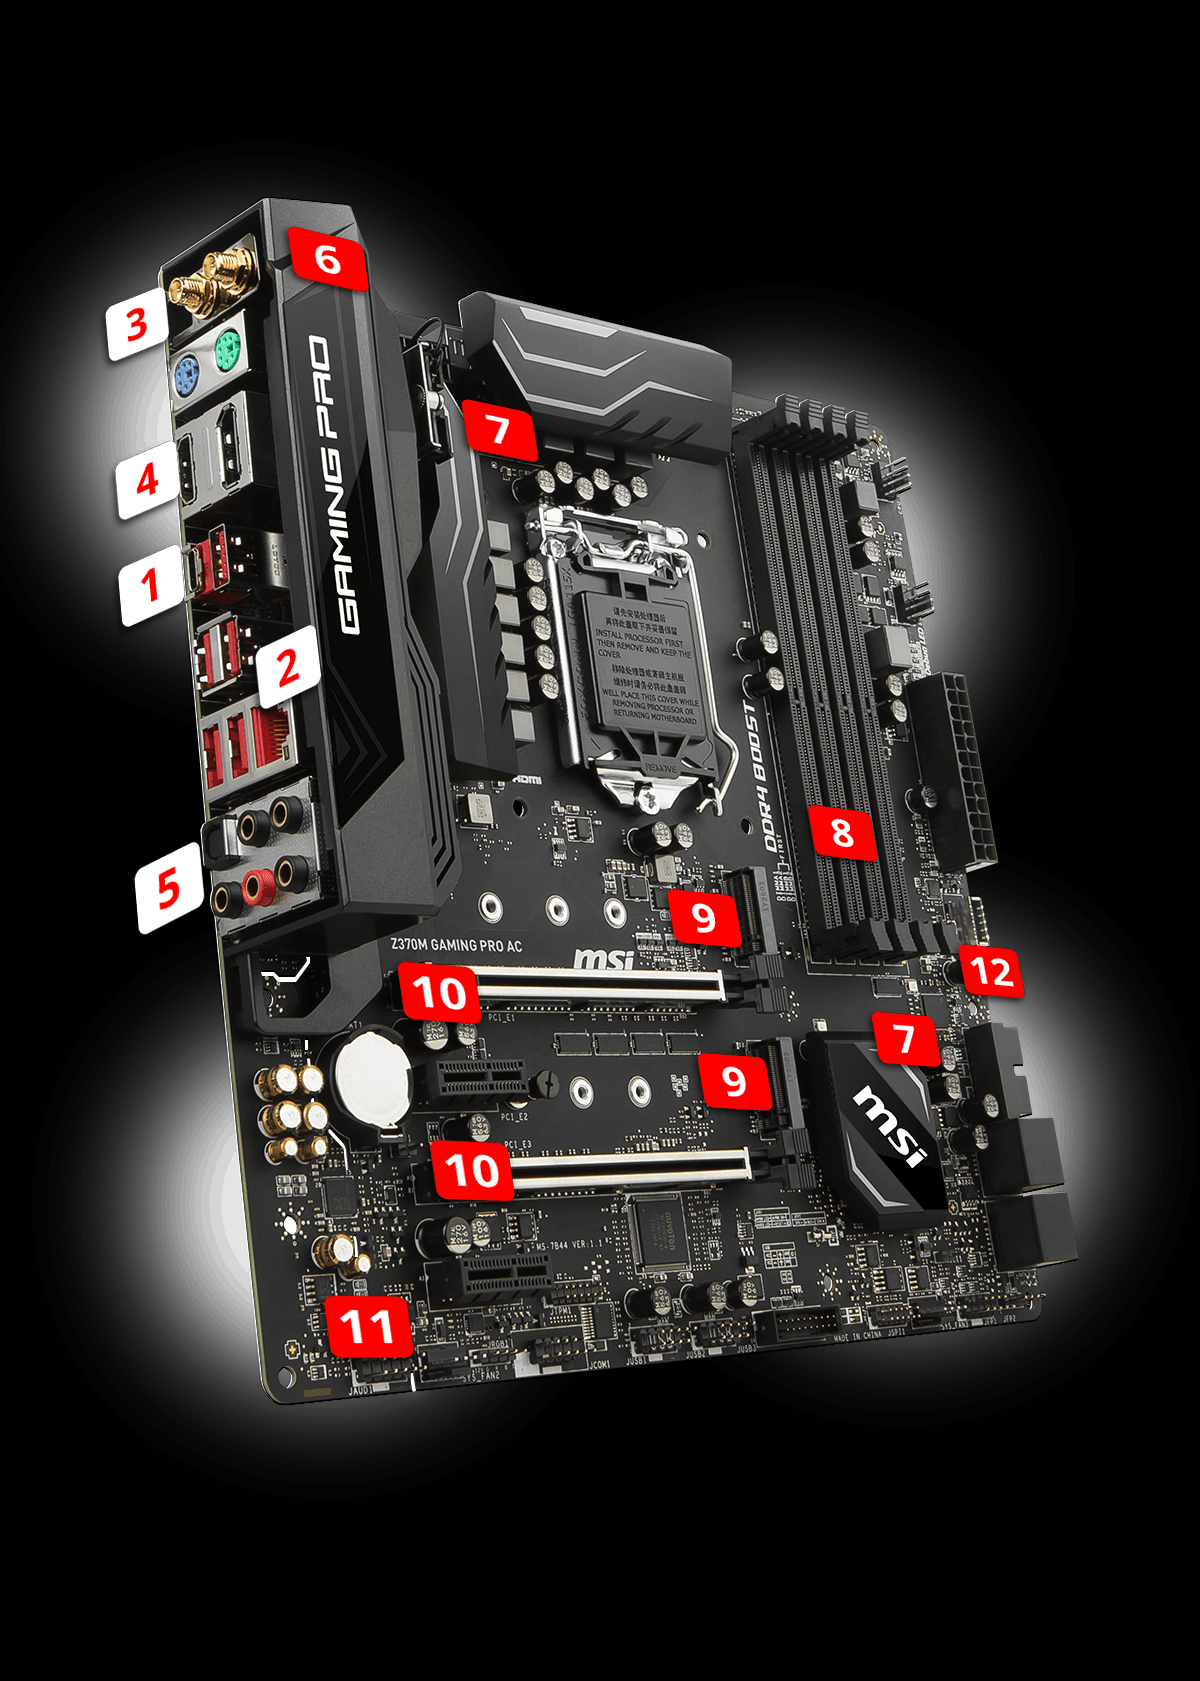 Z370m Gaming Pro Ac Motherboard The World Leader In Pc Computer Atx Power Supply Schematic Diagram Lightning Usb 31 Gen2